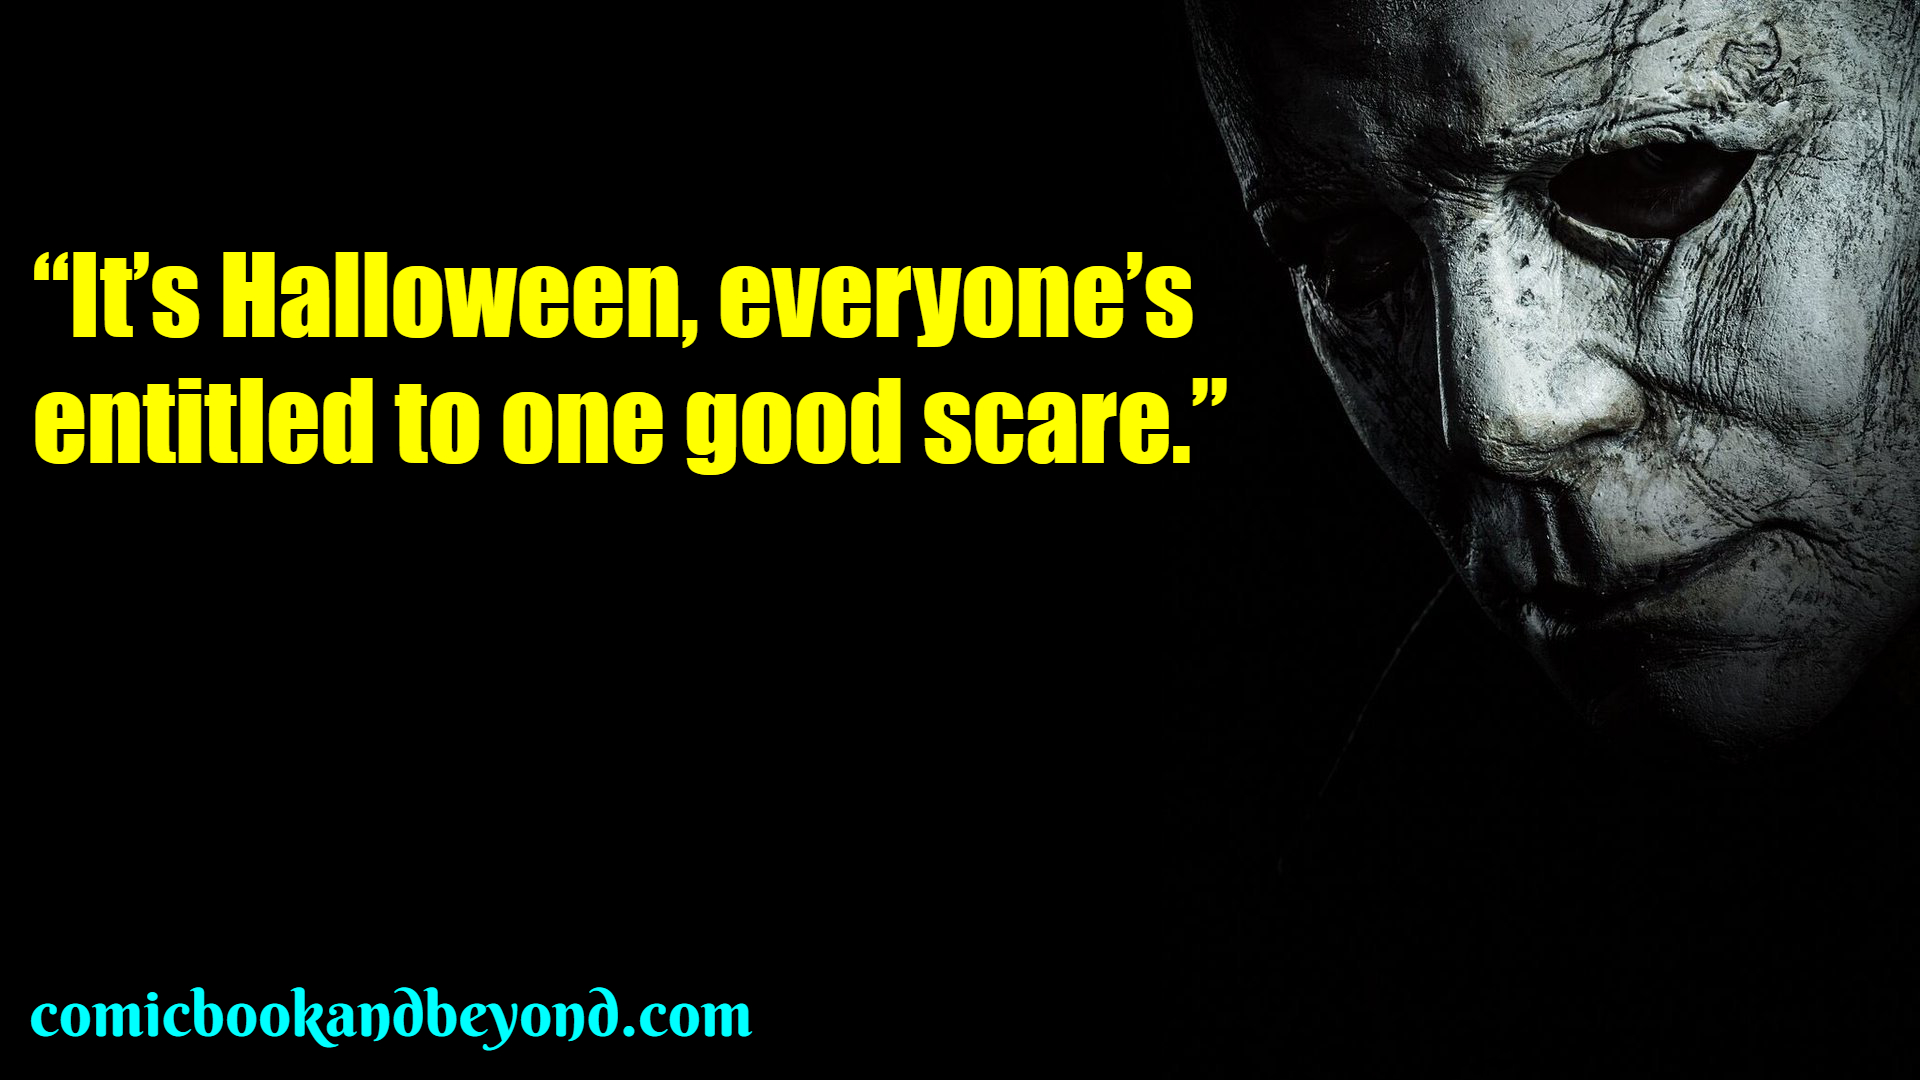 Halloween saying